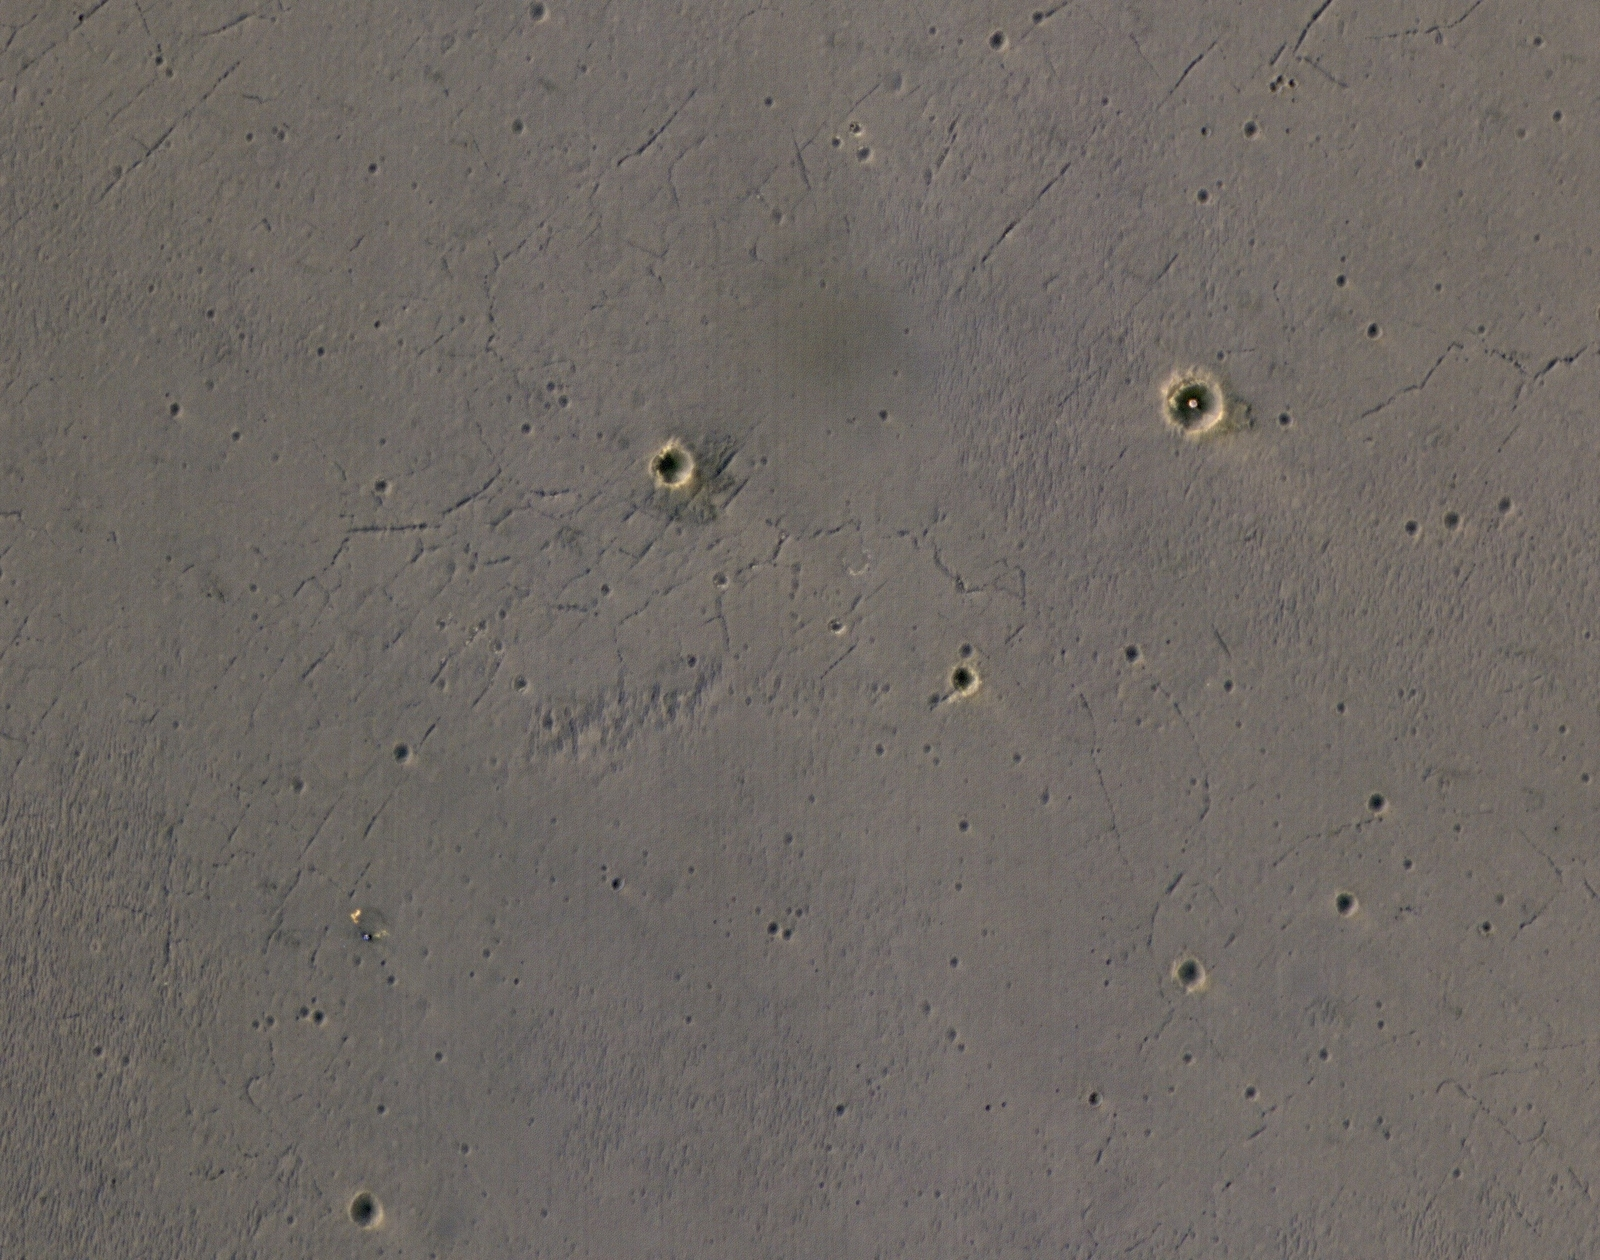 Rover's Landing Hardware at Eagle Crater, Mars